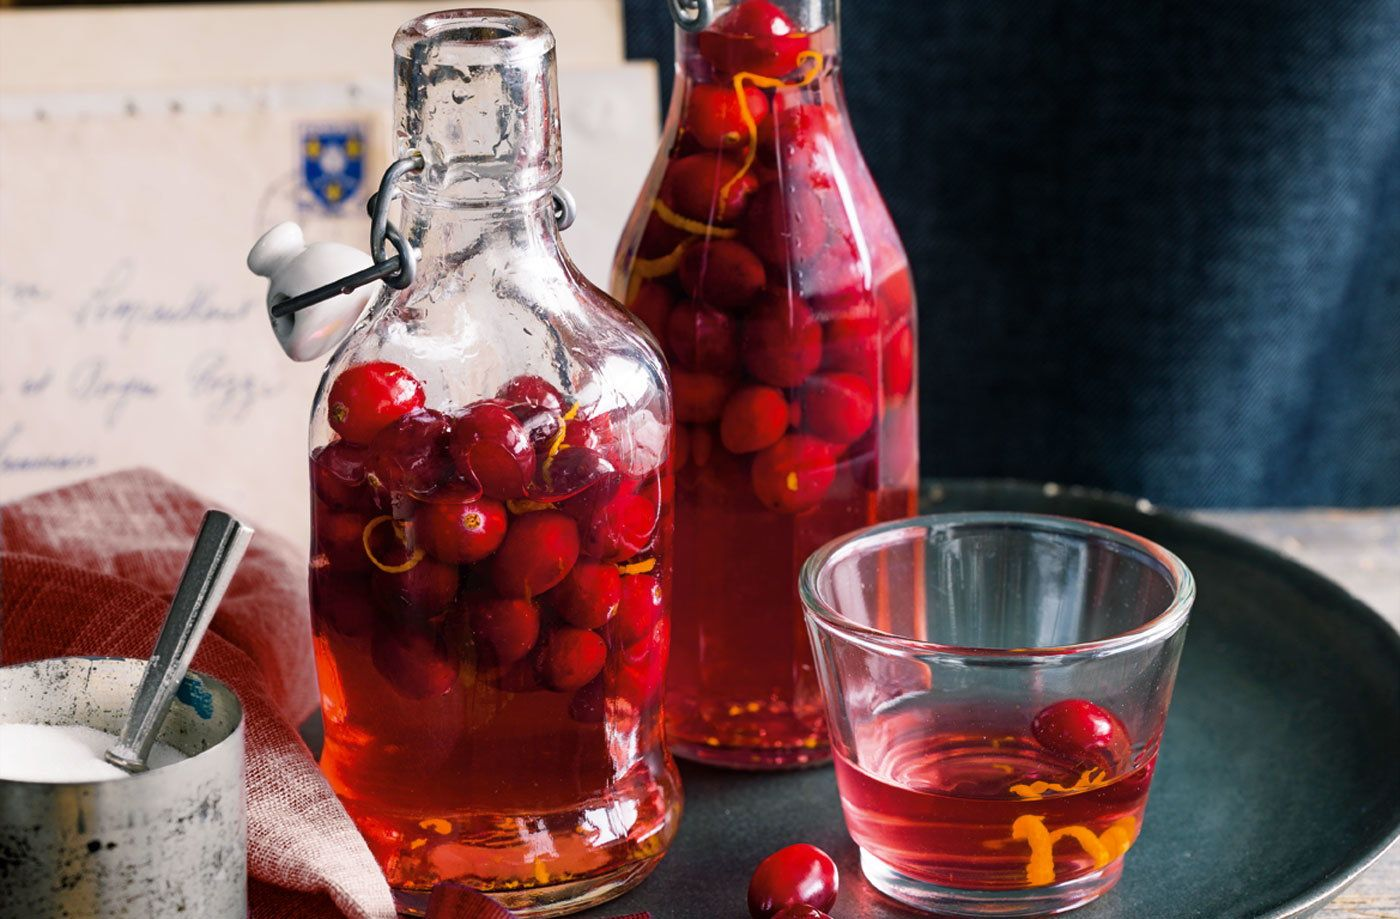 Cranberry Gin Recipe In 2020 Cranberry Gin Recipes Edible Christmas Gifts Tesco Real Food